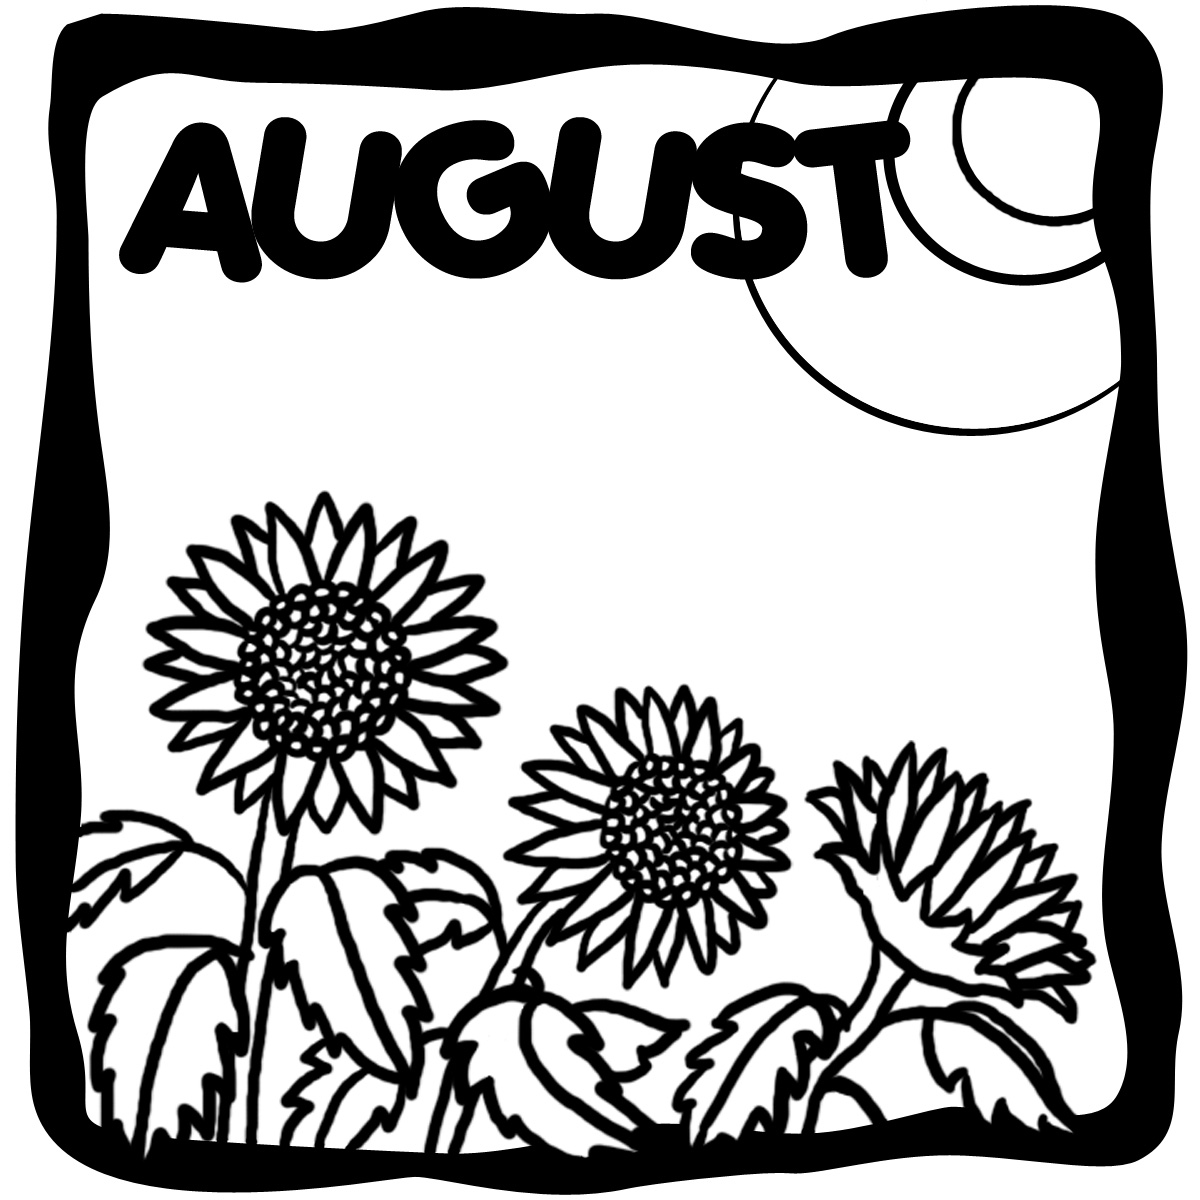 August Clip Art Illustration Grayscale Month Of August